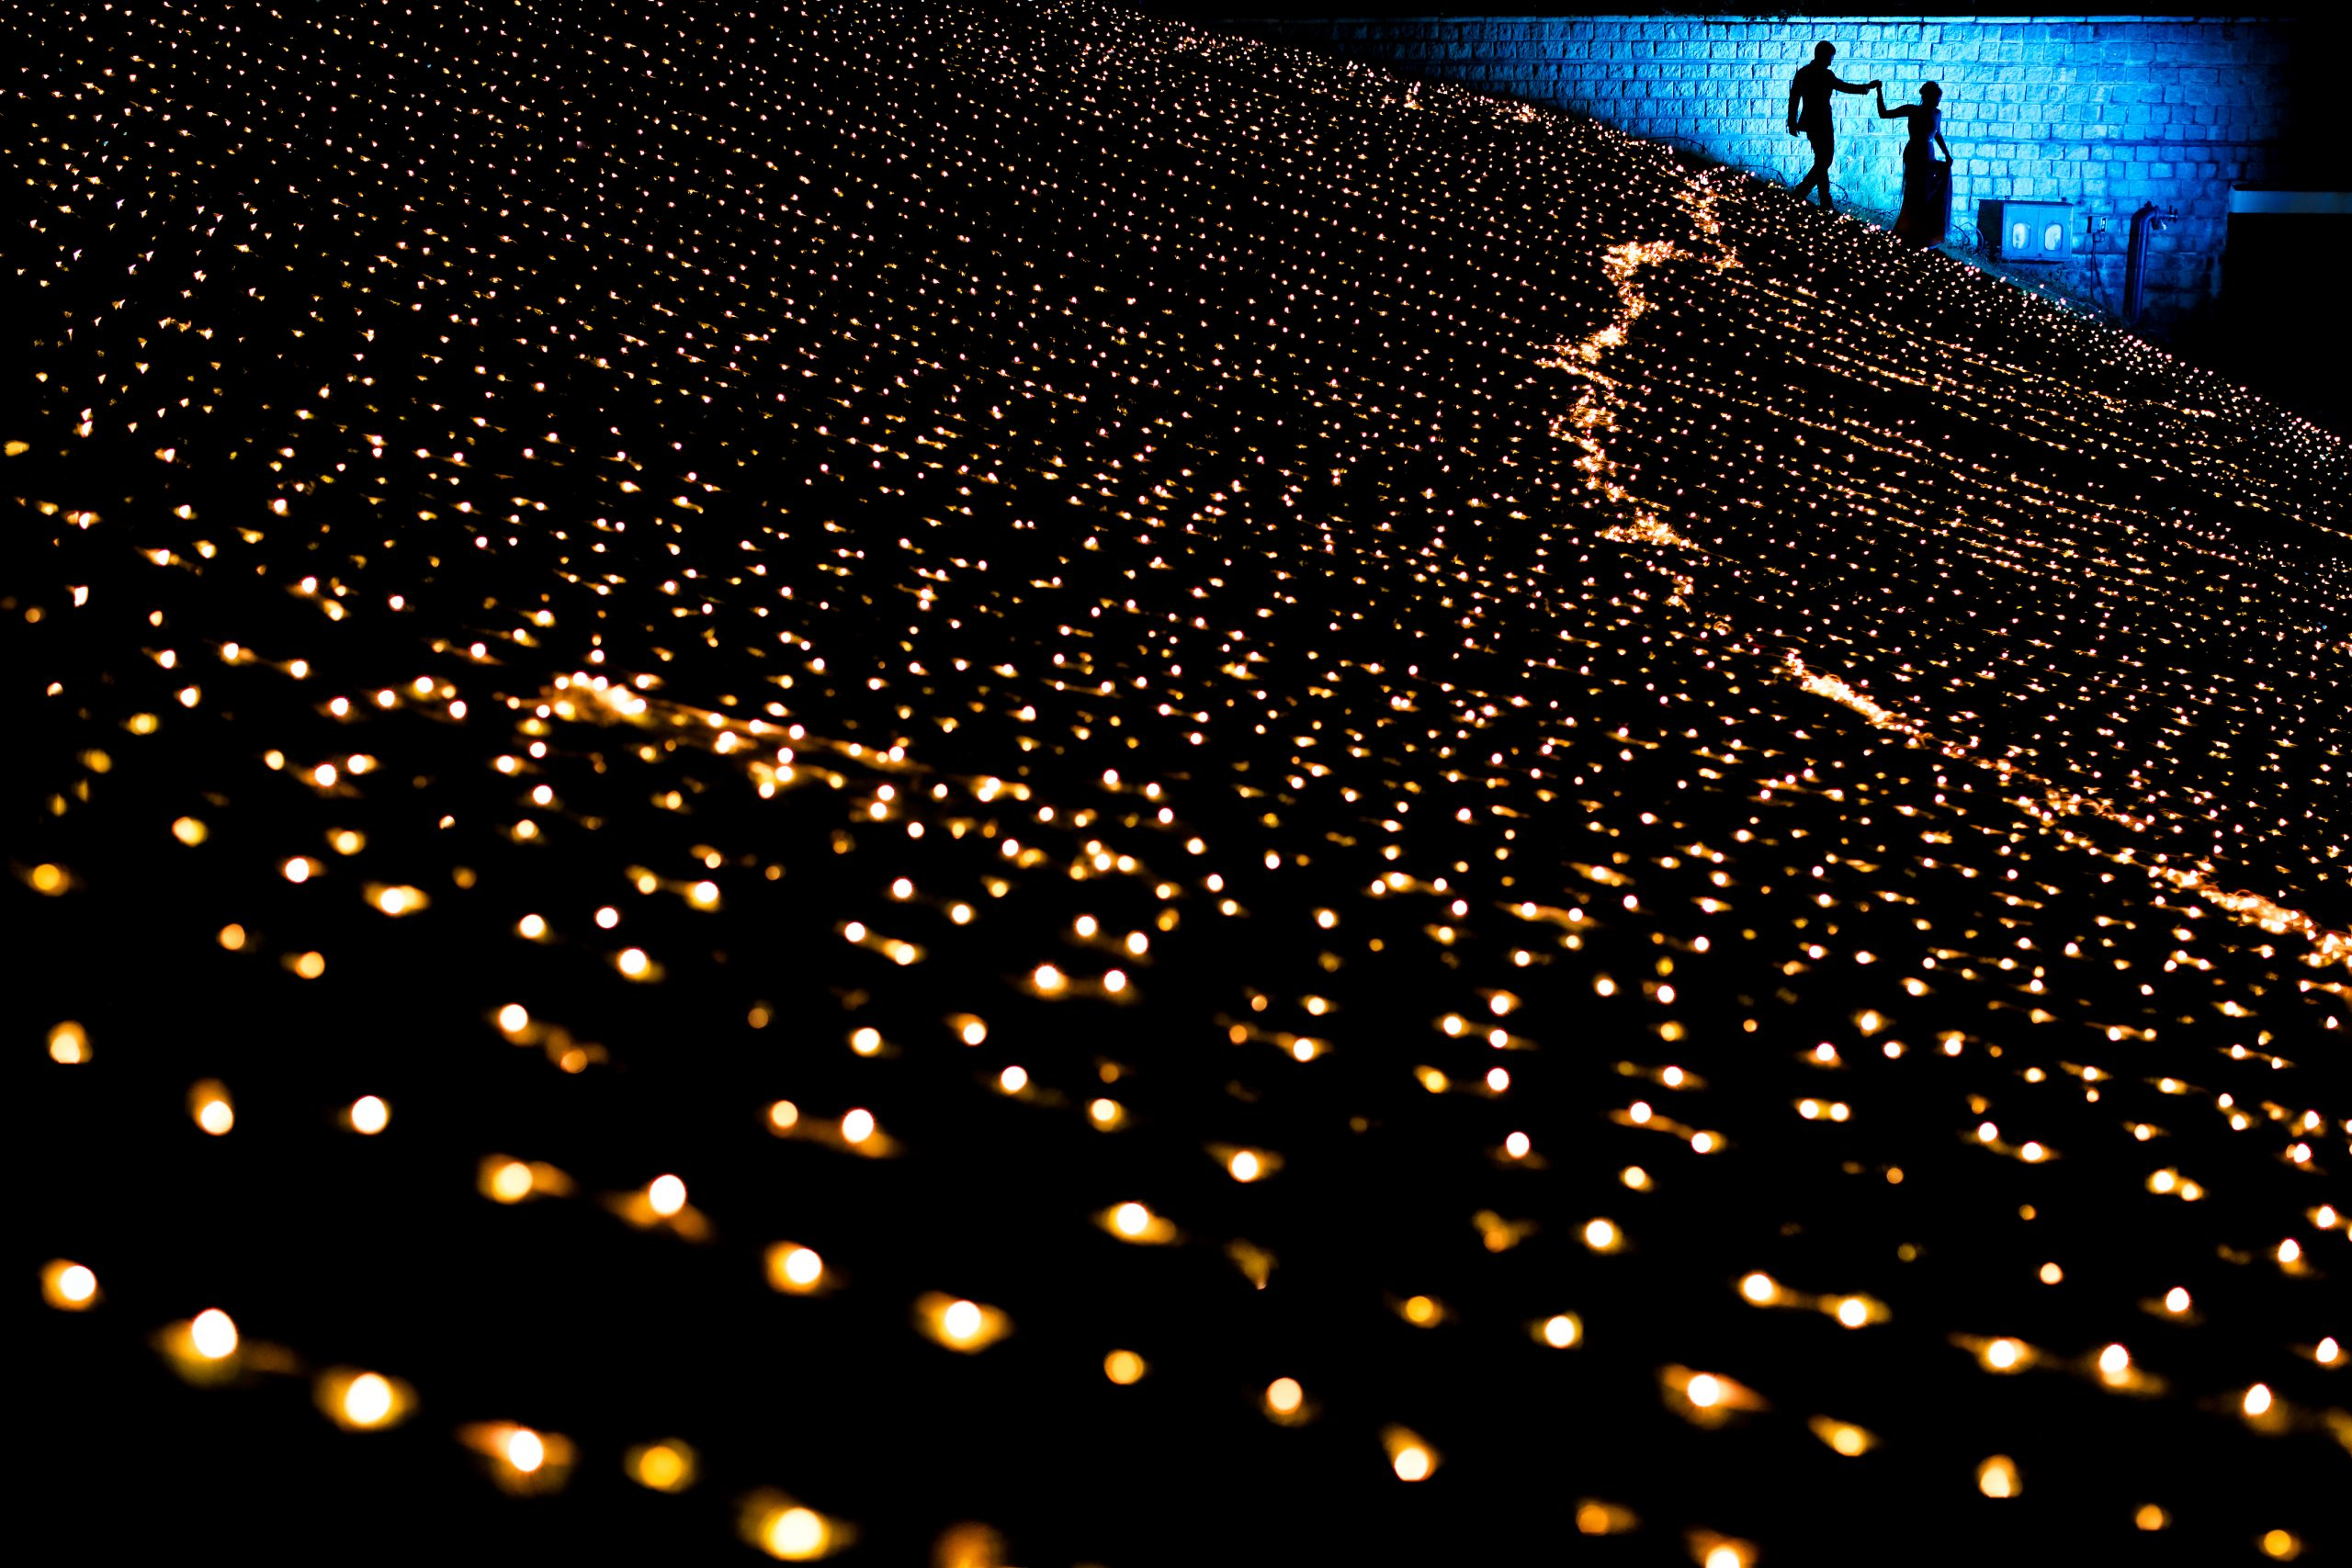 Silhouettes of bride and groom walking hand in hand with foreground of sparkling lights on the ground at night